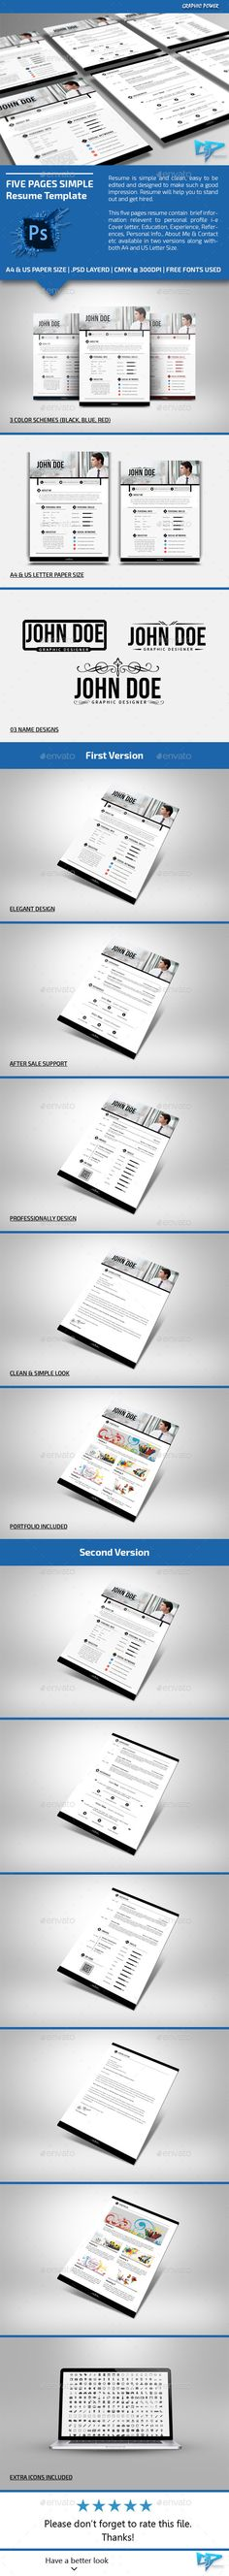 Infographic Resume Vol1 Infographic resume and Infographic - one page resumes